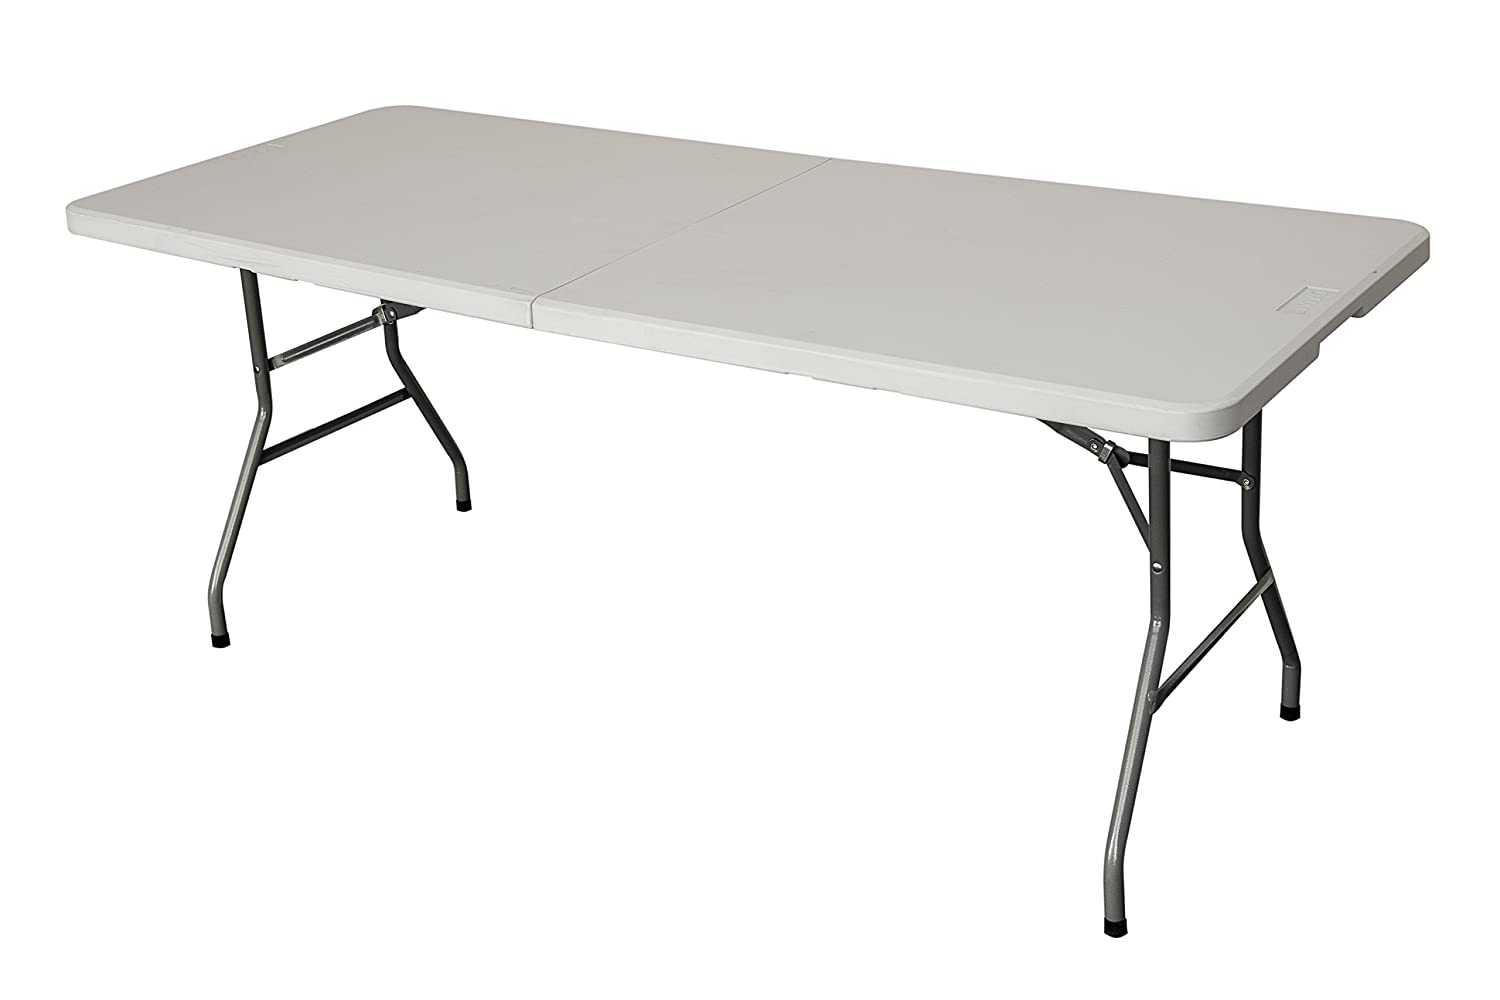 LIVIVO Set of 2 Heavy Duty 6ft Folding Table – Extra Strong and Durable Multi-Purpose Portable Trestle Table Suitable for Indoor and Outdoor Use – Folds Flat for Simple Storage with Ergonomically Designed Carry Handle for Easy Transport - Easy Wipe Clean